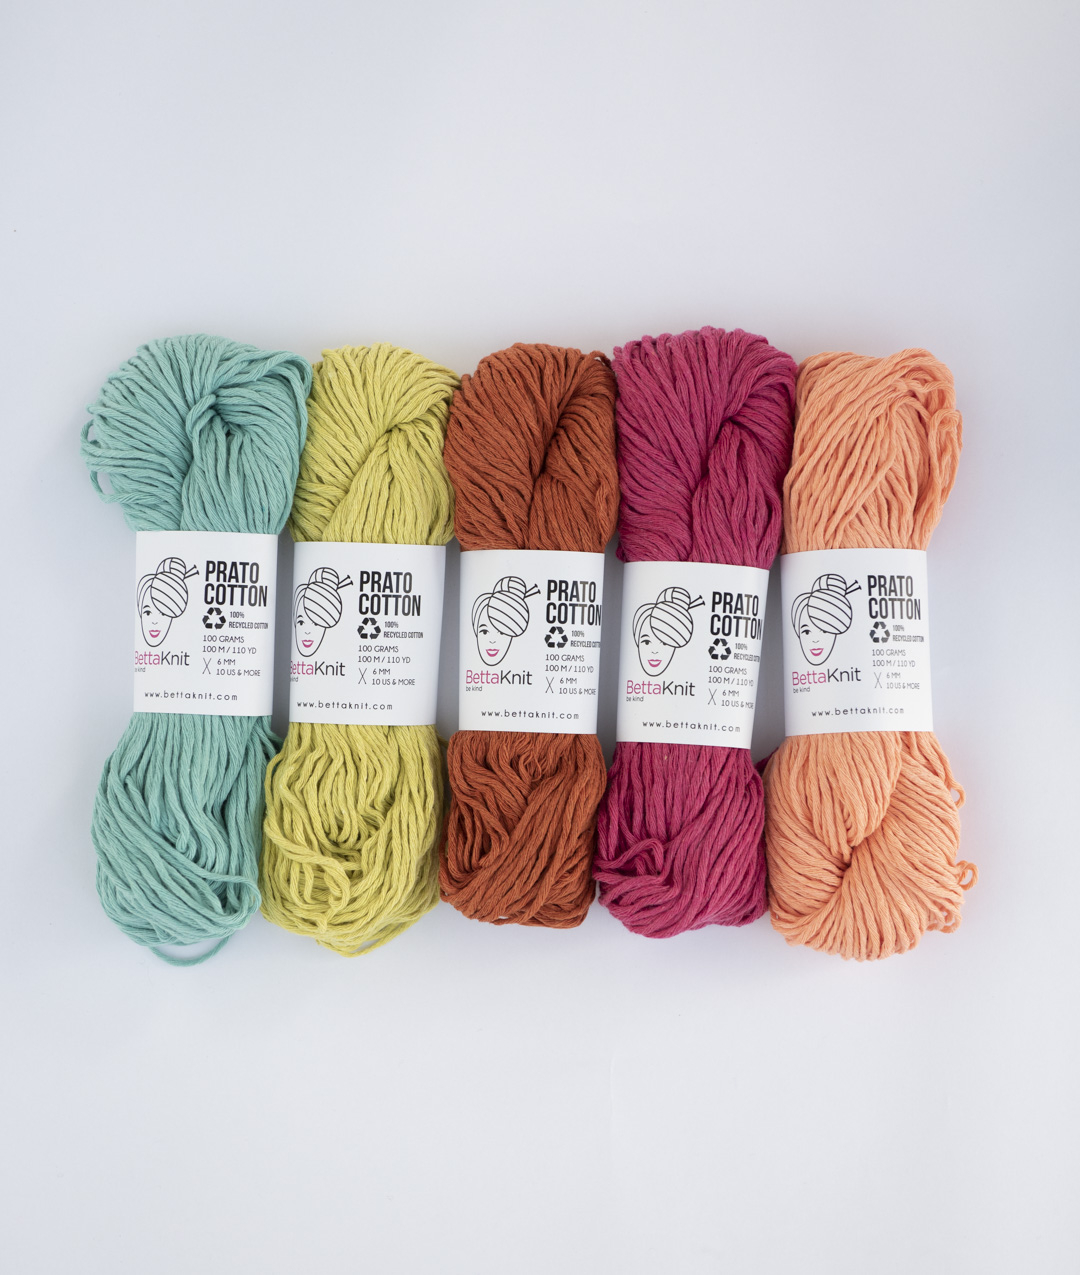 Pack of Yarn -  - Prato Cotton Pack - 5 balls - 1